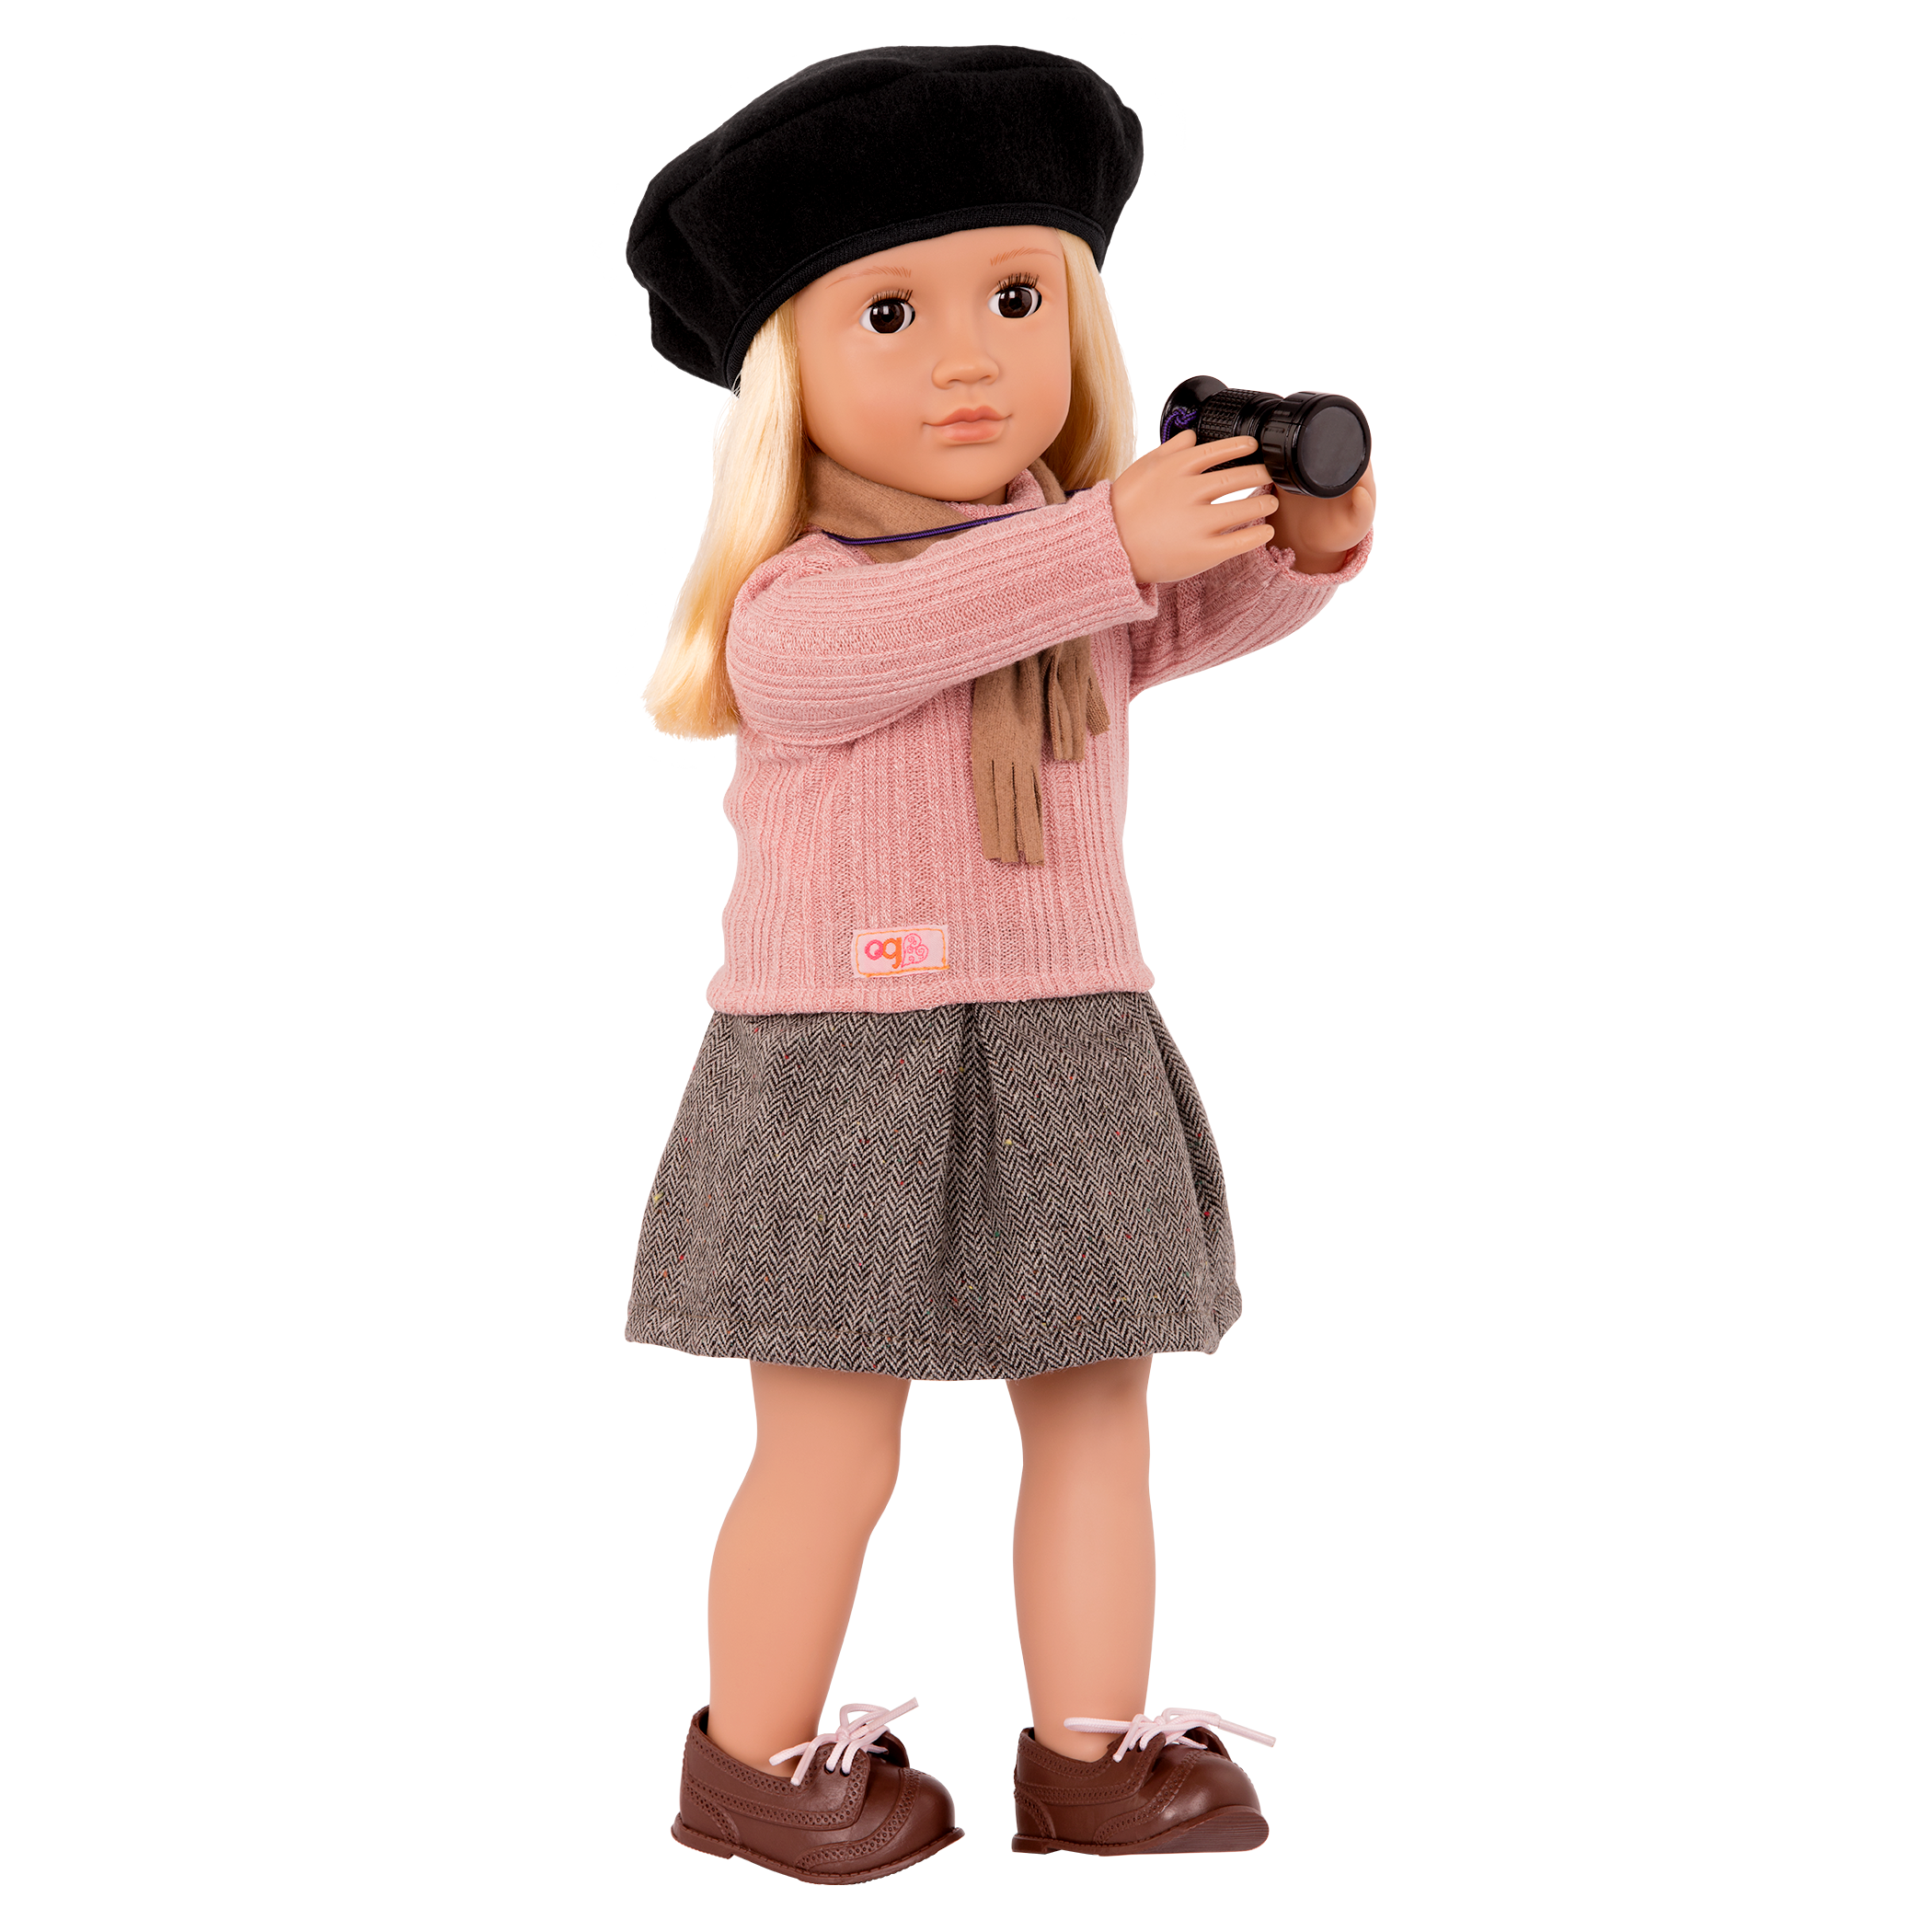 Kathleen Regular 18-inch Director Doll with viewfinder